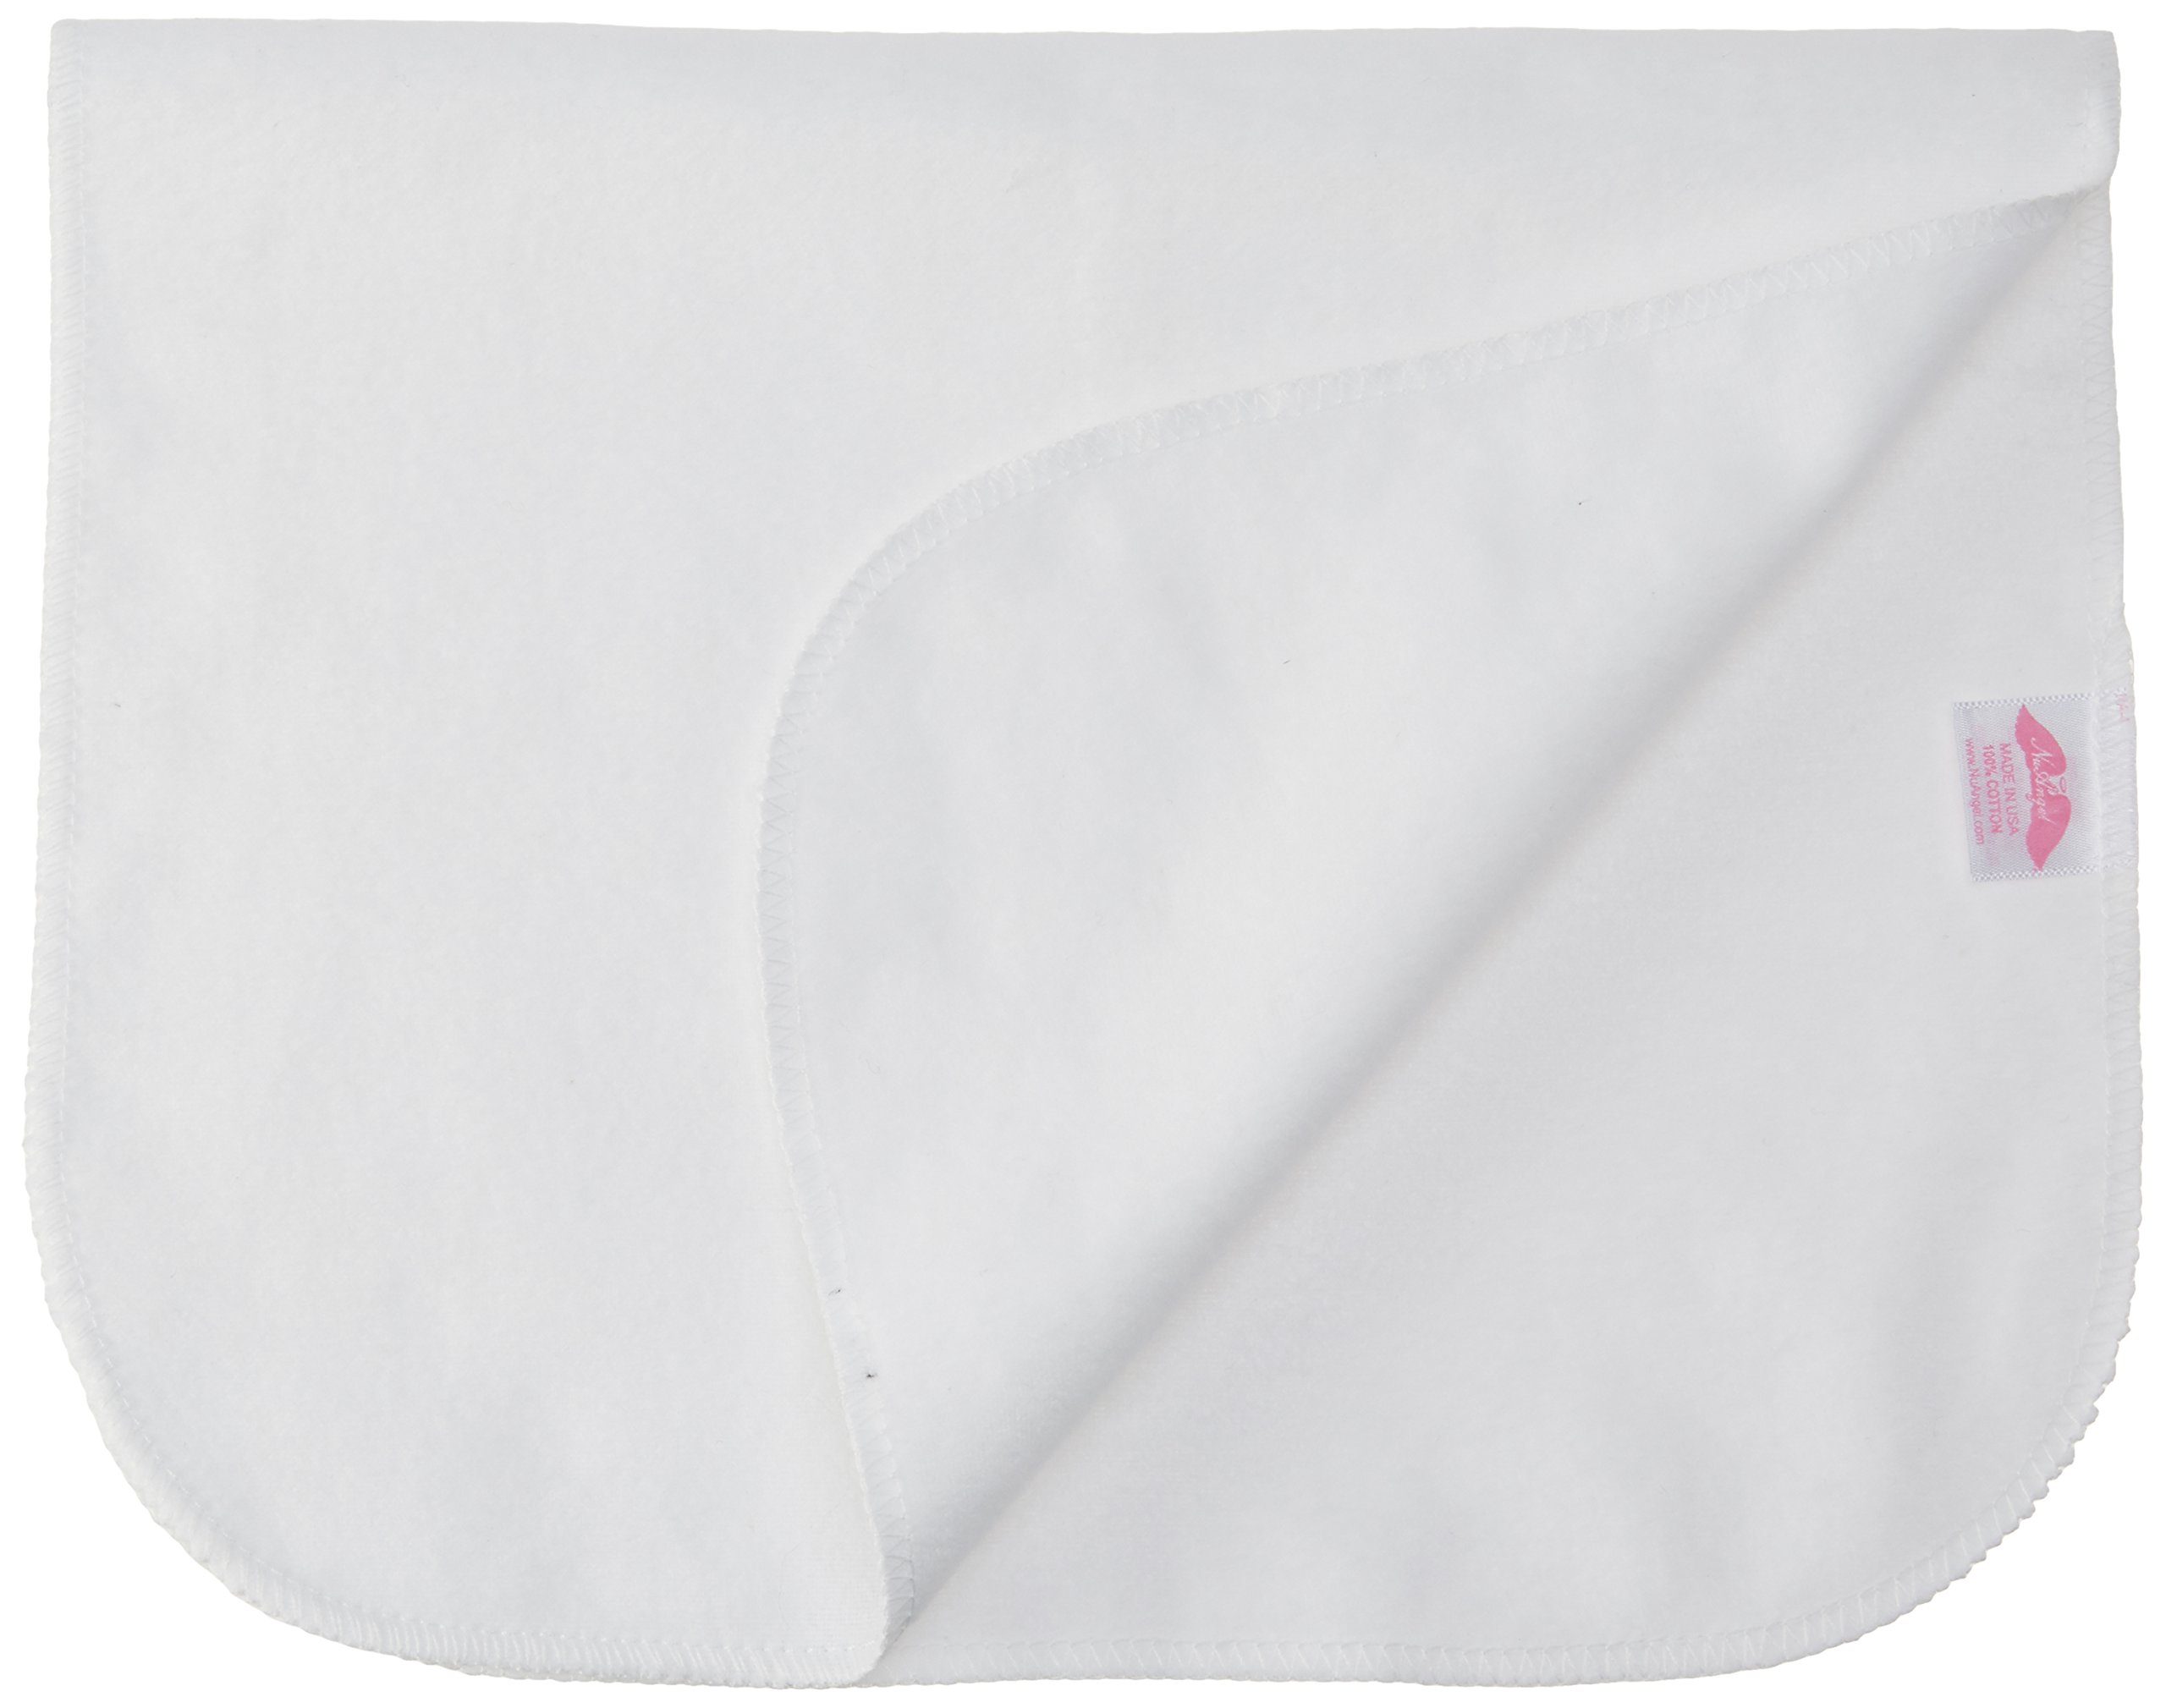 NuAngel 12 Piece Cotton Burp Cloths, White